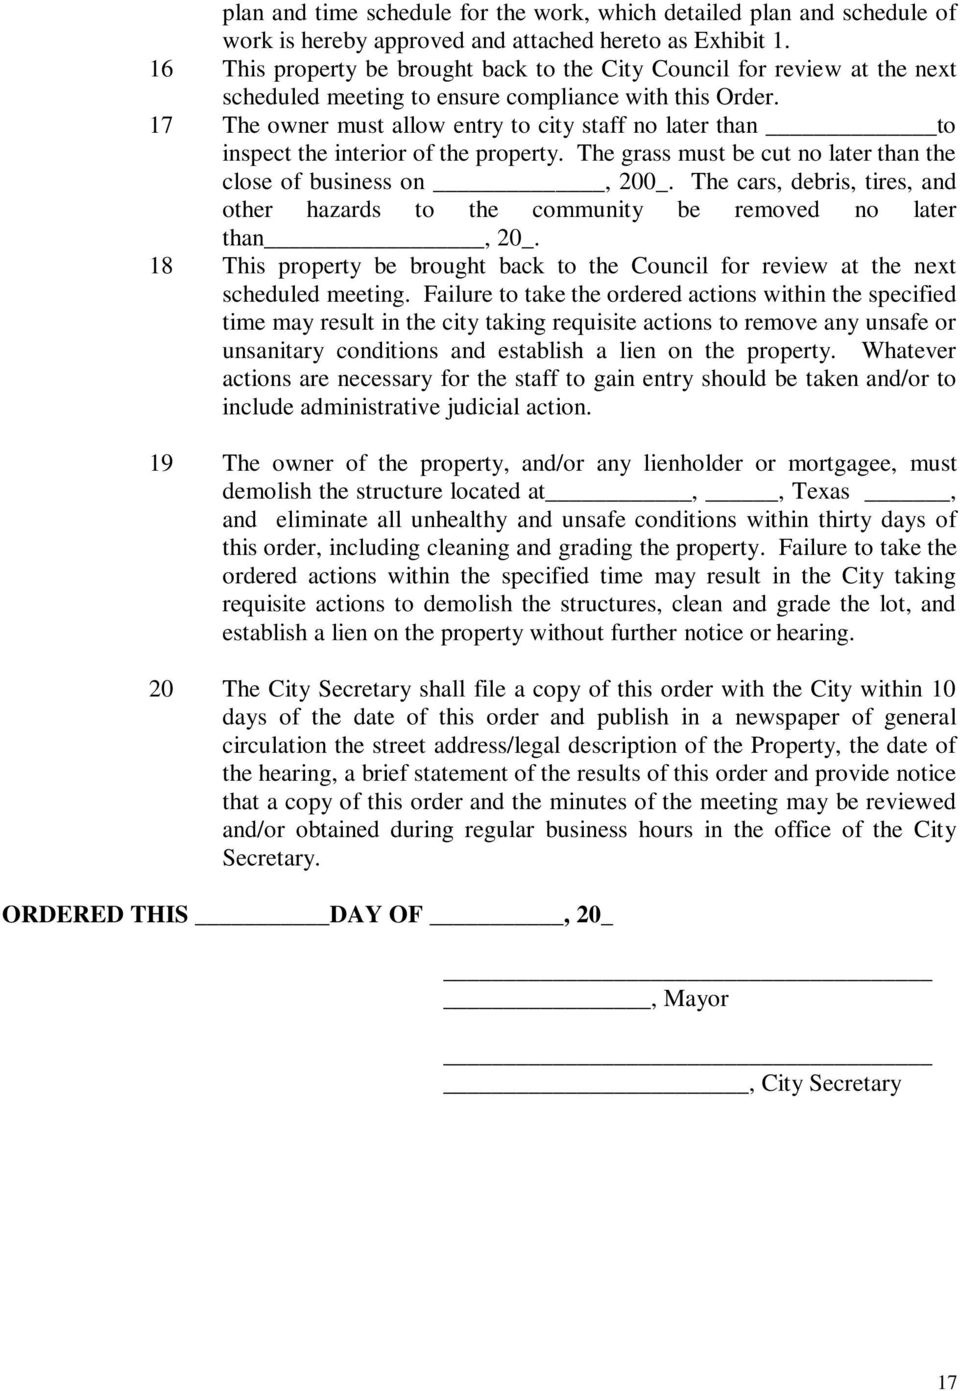 17 The owner must allow entry to city staff no later than to inspect the interior of the property. The grass must be cut no later than the close of business on, 200_.